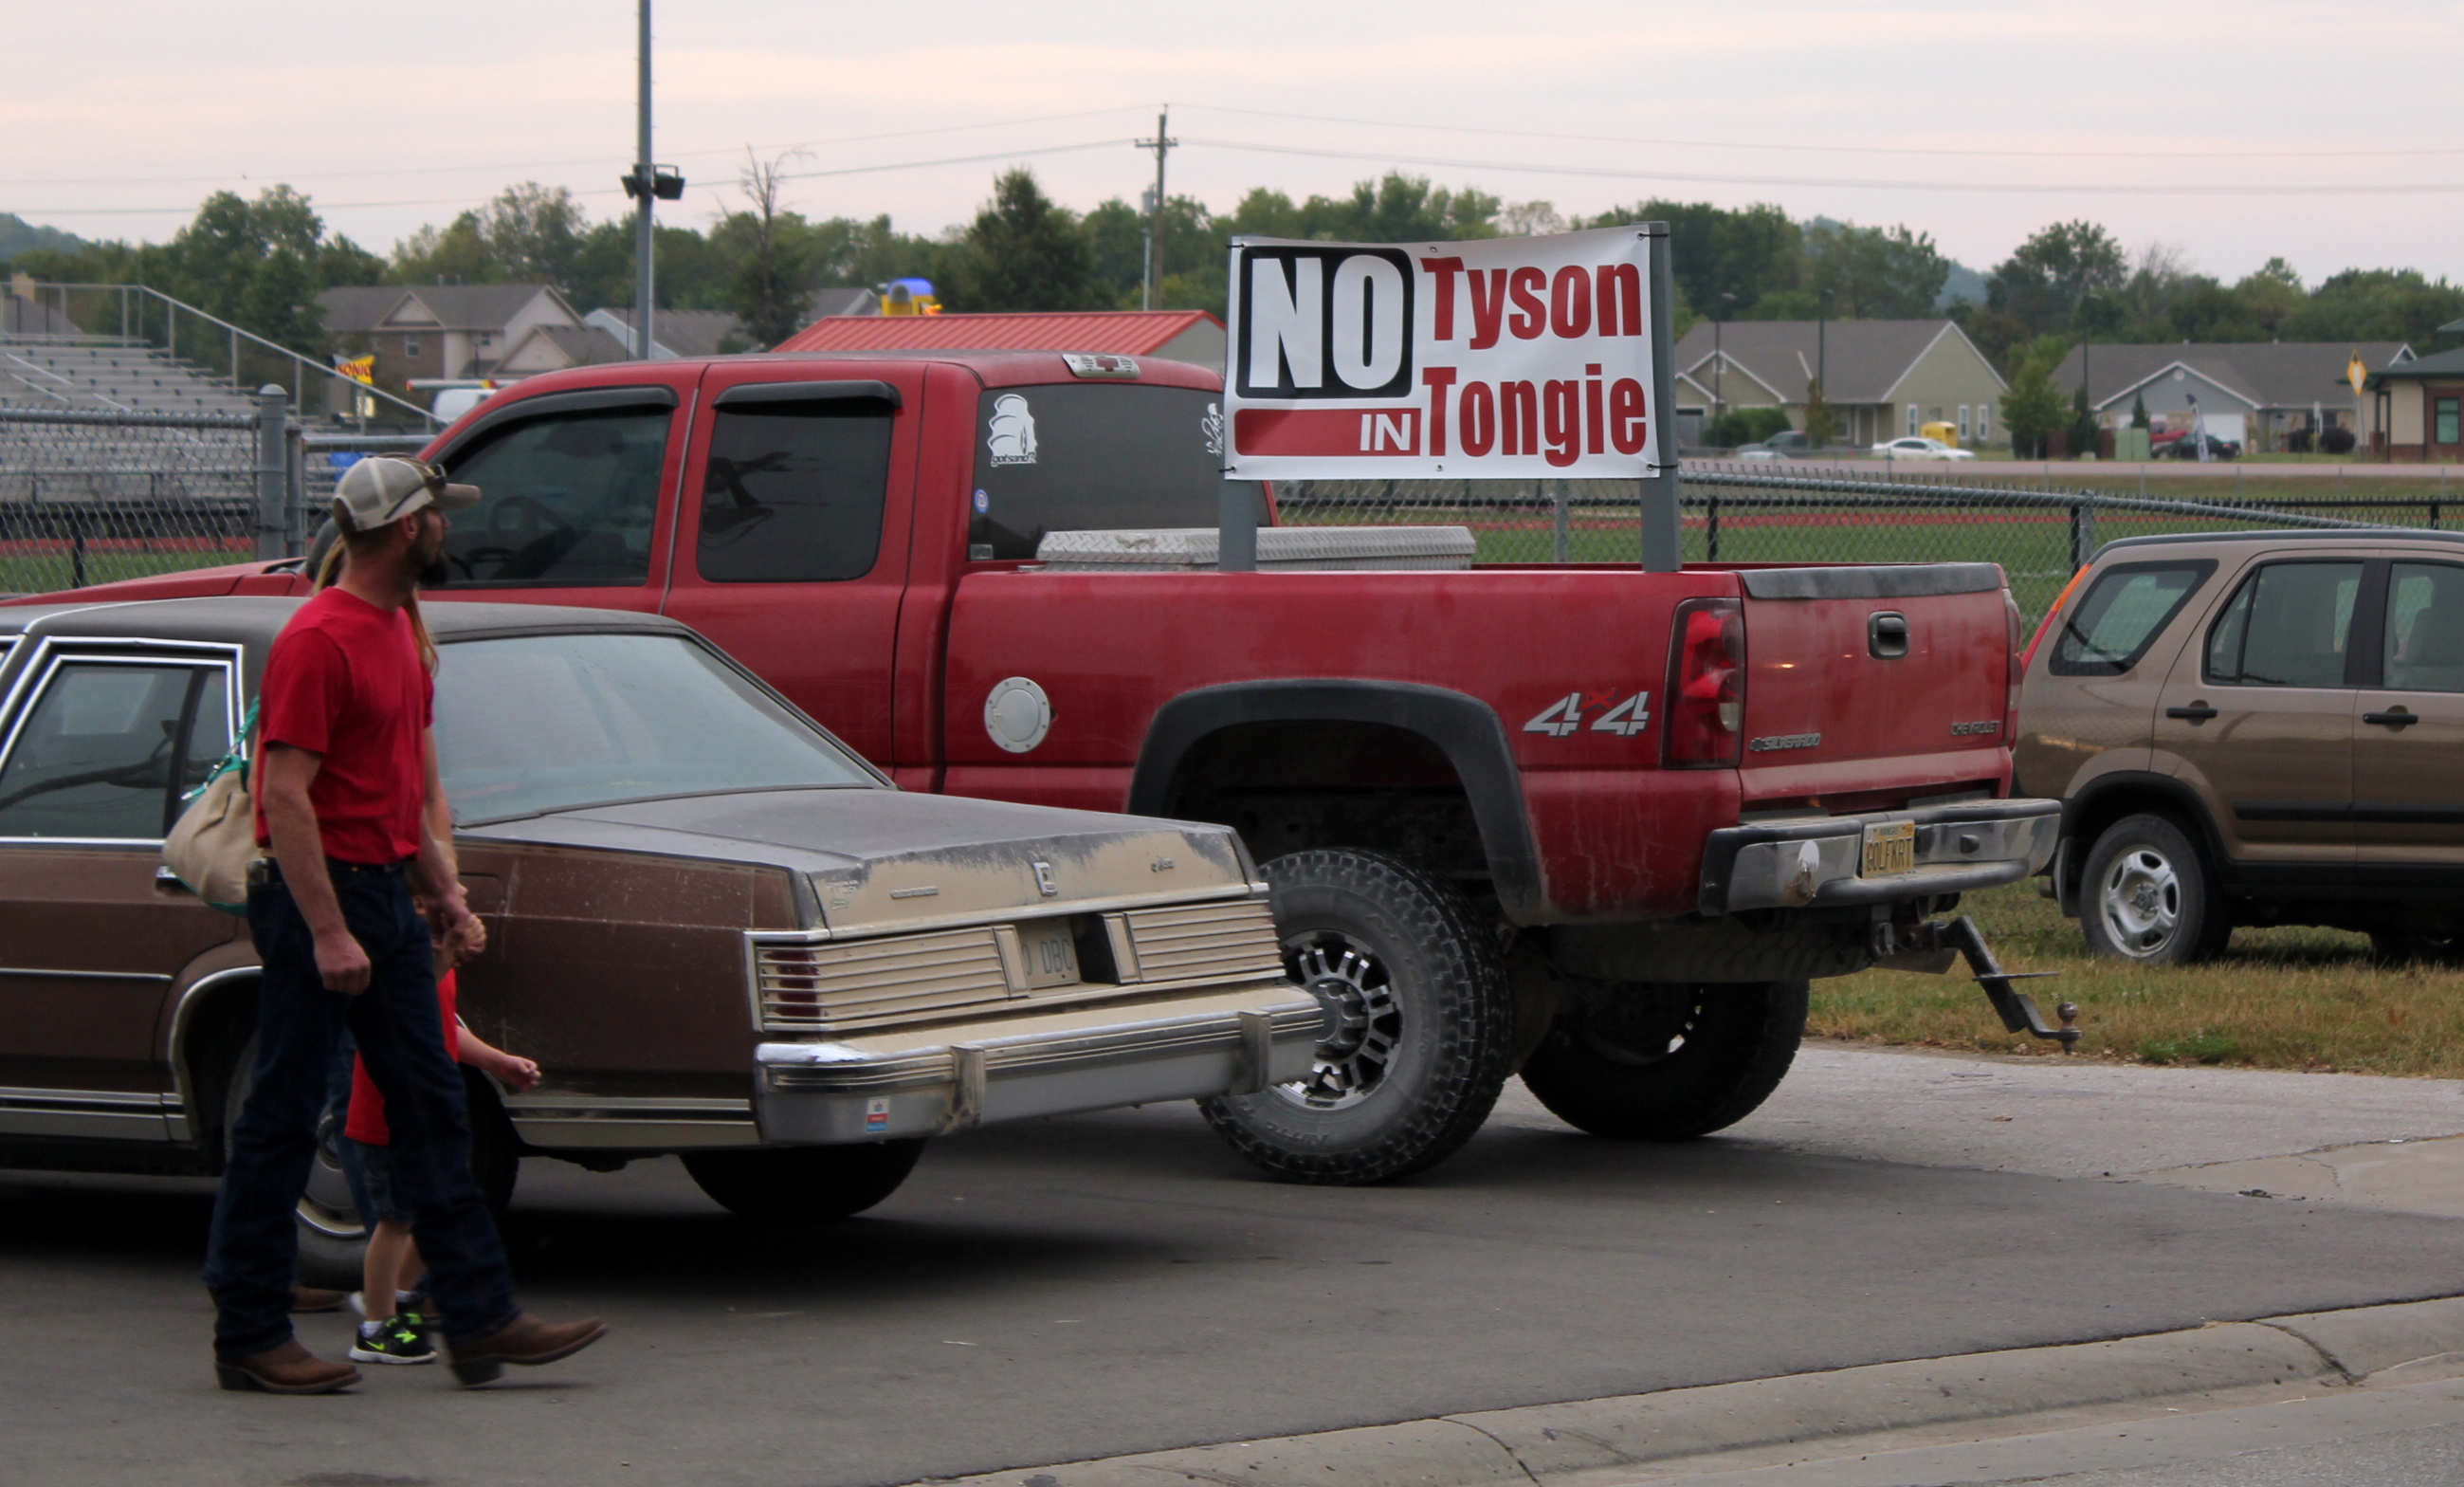 """A """"No Tyson"""" banner pops up from the bed of a pickup truck outside a public meeting last year about the plan for a chicken processing plant in Tonganoxie, Kansas. (Photo by Stephen Koranda)"""